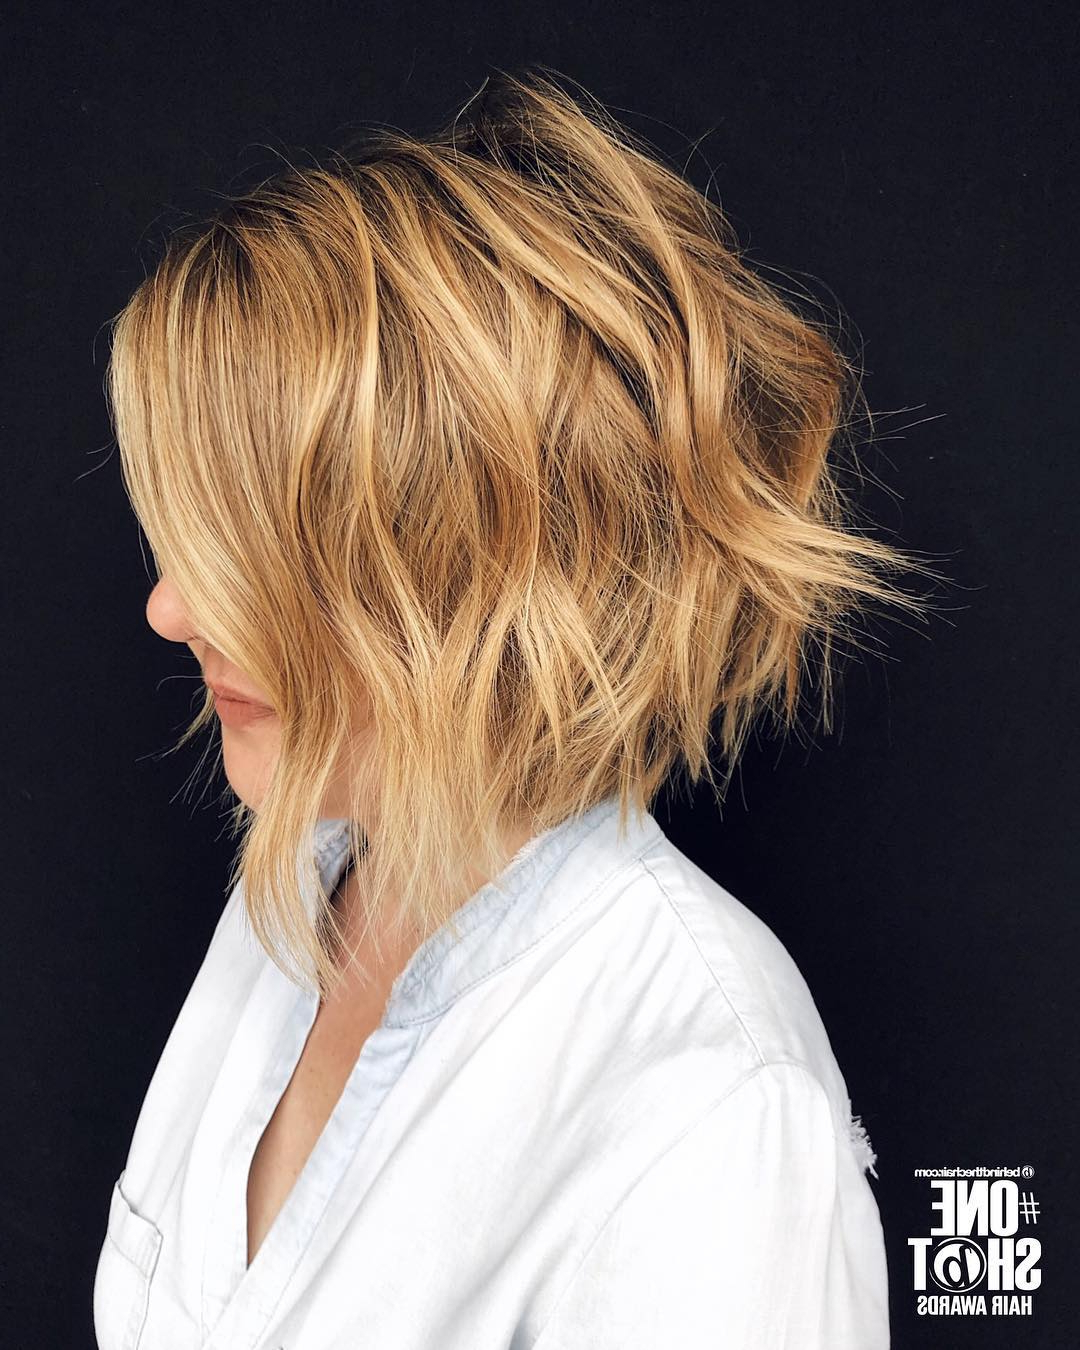 Top 10 Best Short Bob Hairstyles For Summer, Short Haircuts 2019 Intended For Newest Pink Asymmetrical A Line Bob Hairstyles (View 19 of 20)